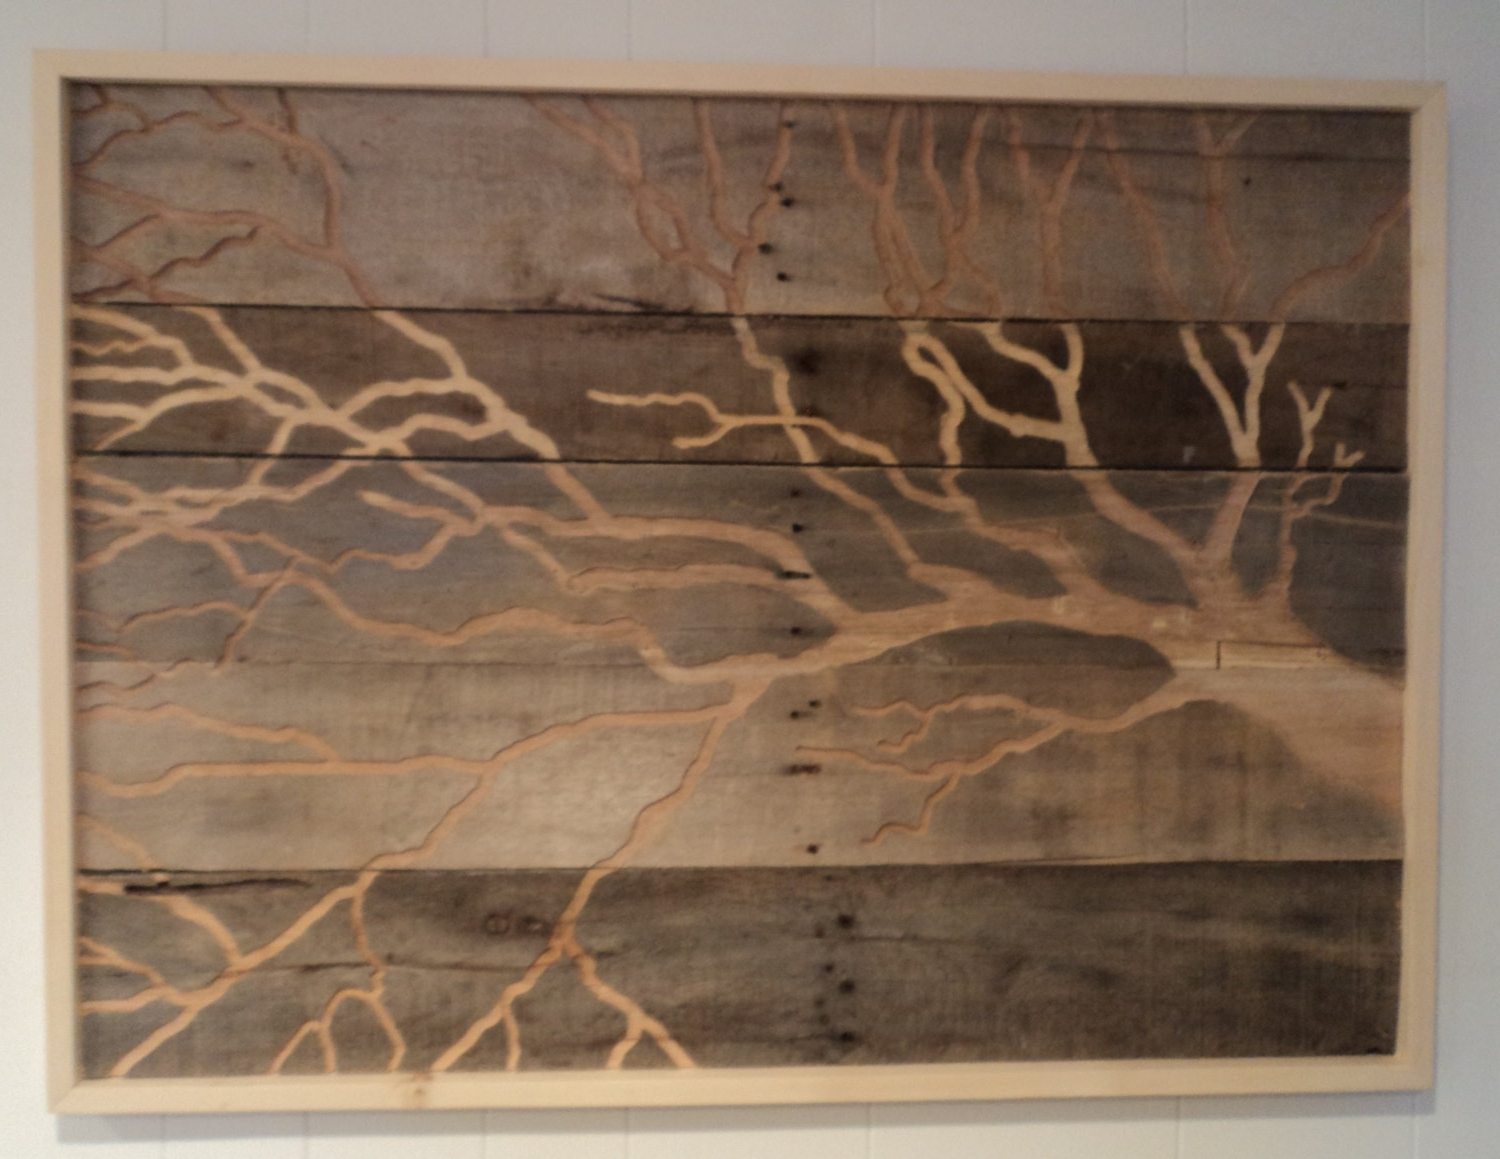 Rustic Wood Wall Ideas Art Imposing Design Impossing Wooden Sample Pertaining To Well Known Large Rustic Wall Art (View 12 of 15)